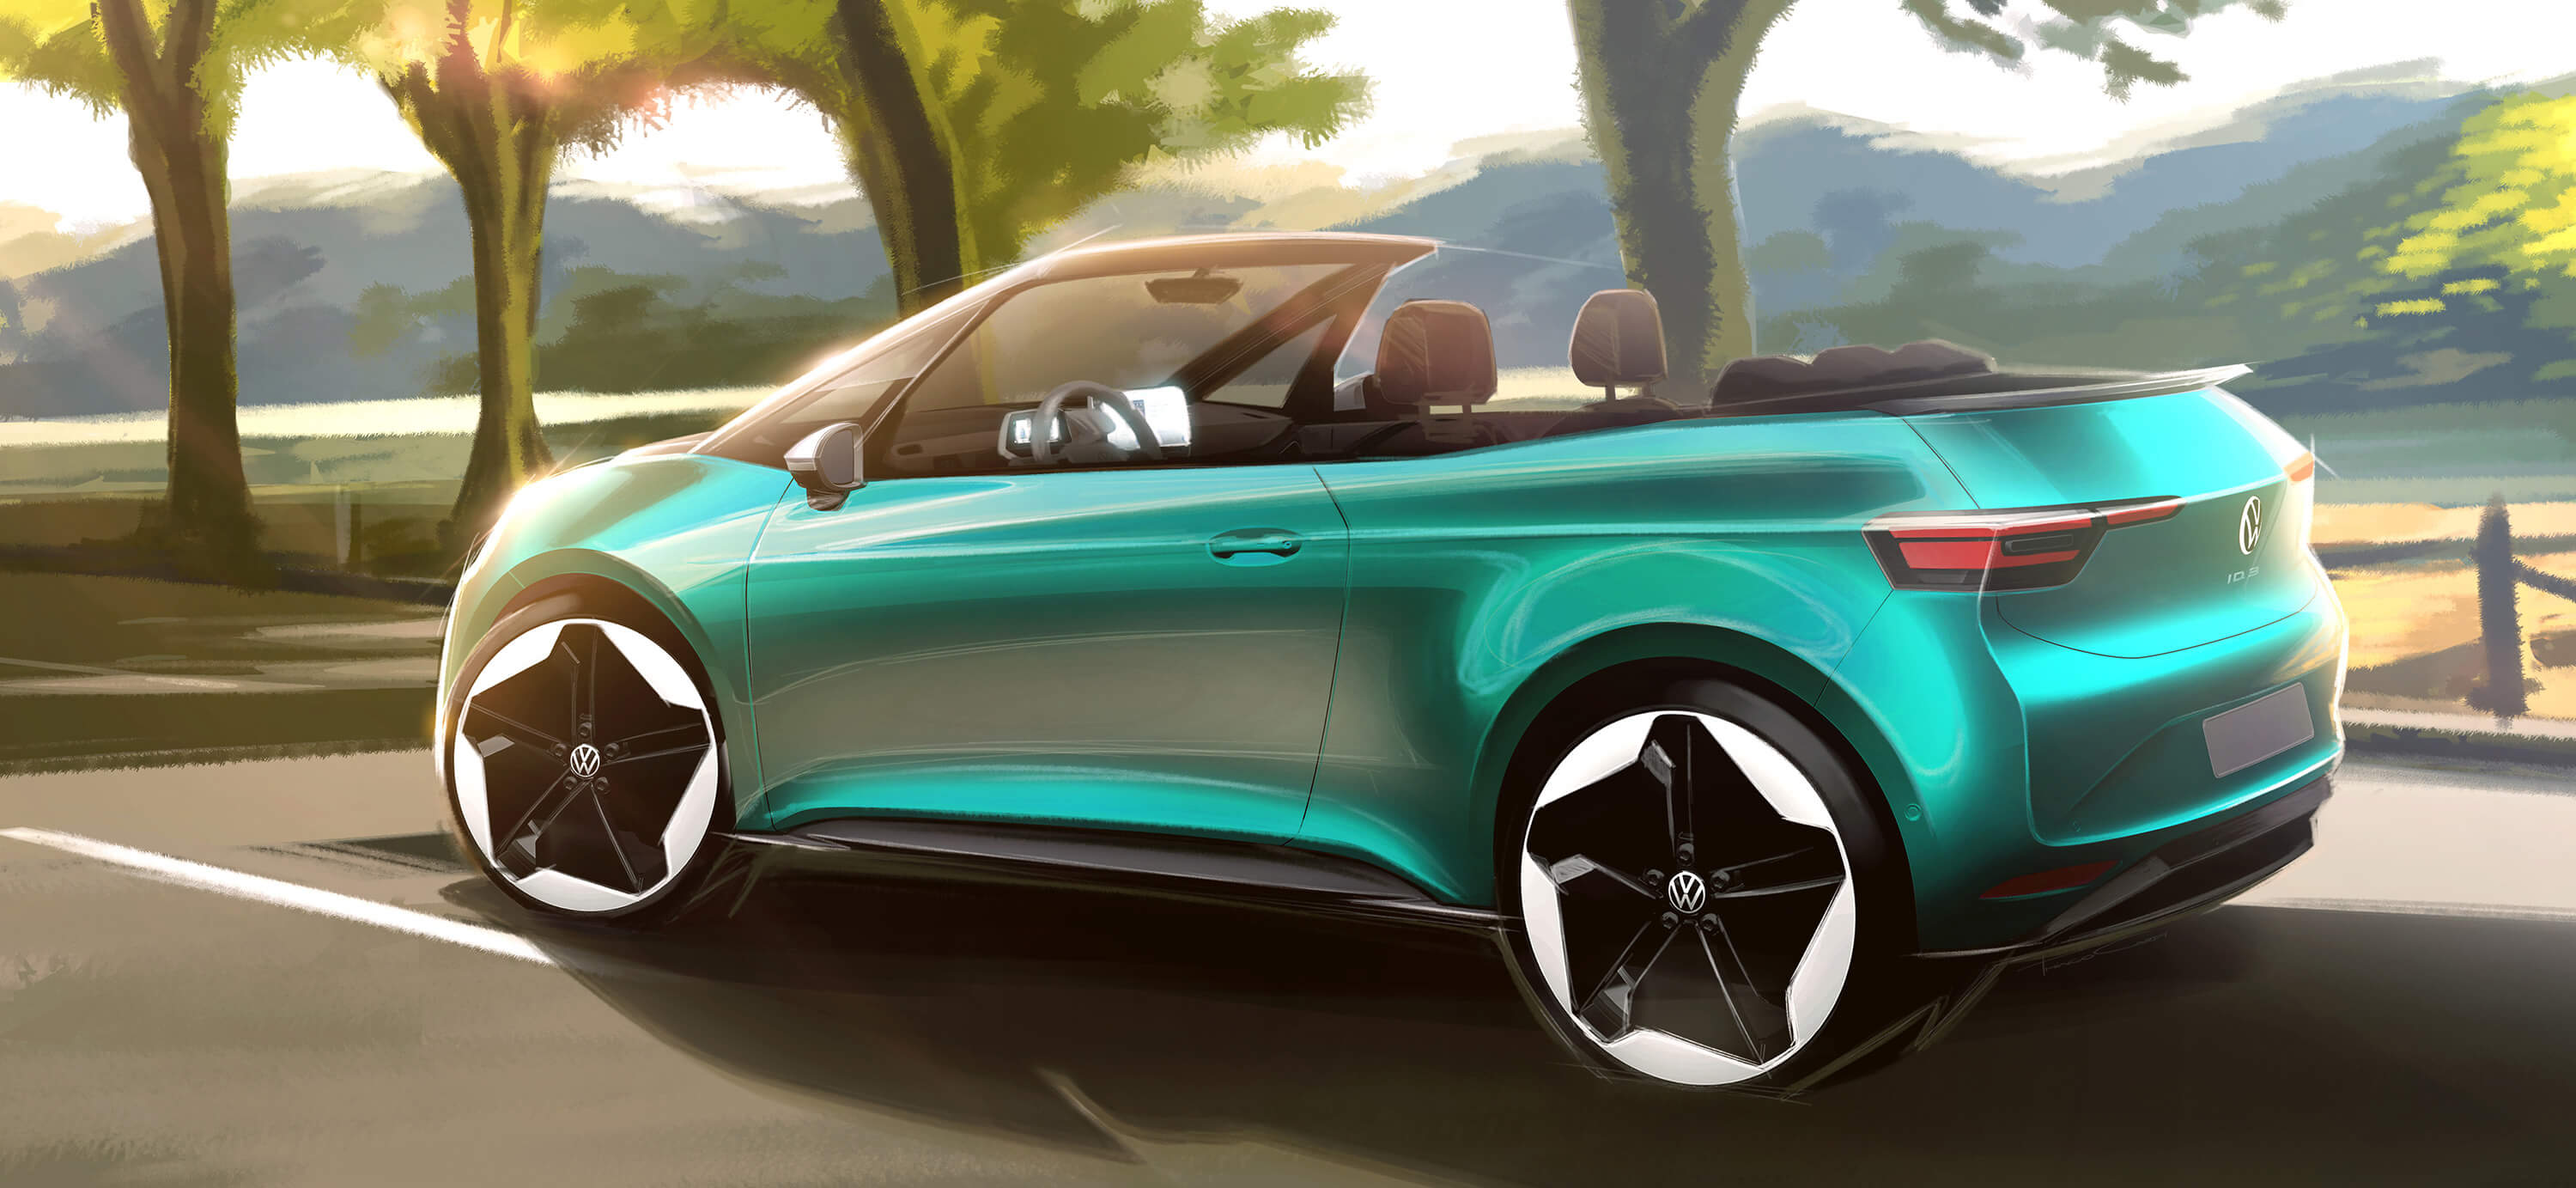 VW ID.3 CABRIO - design sketch